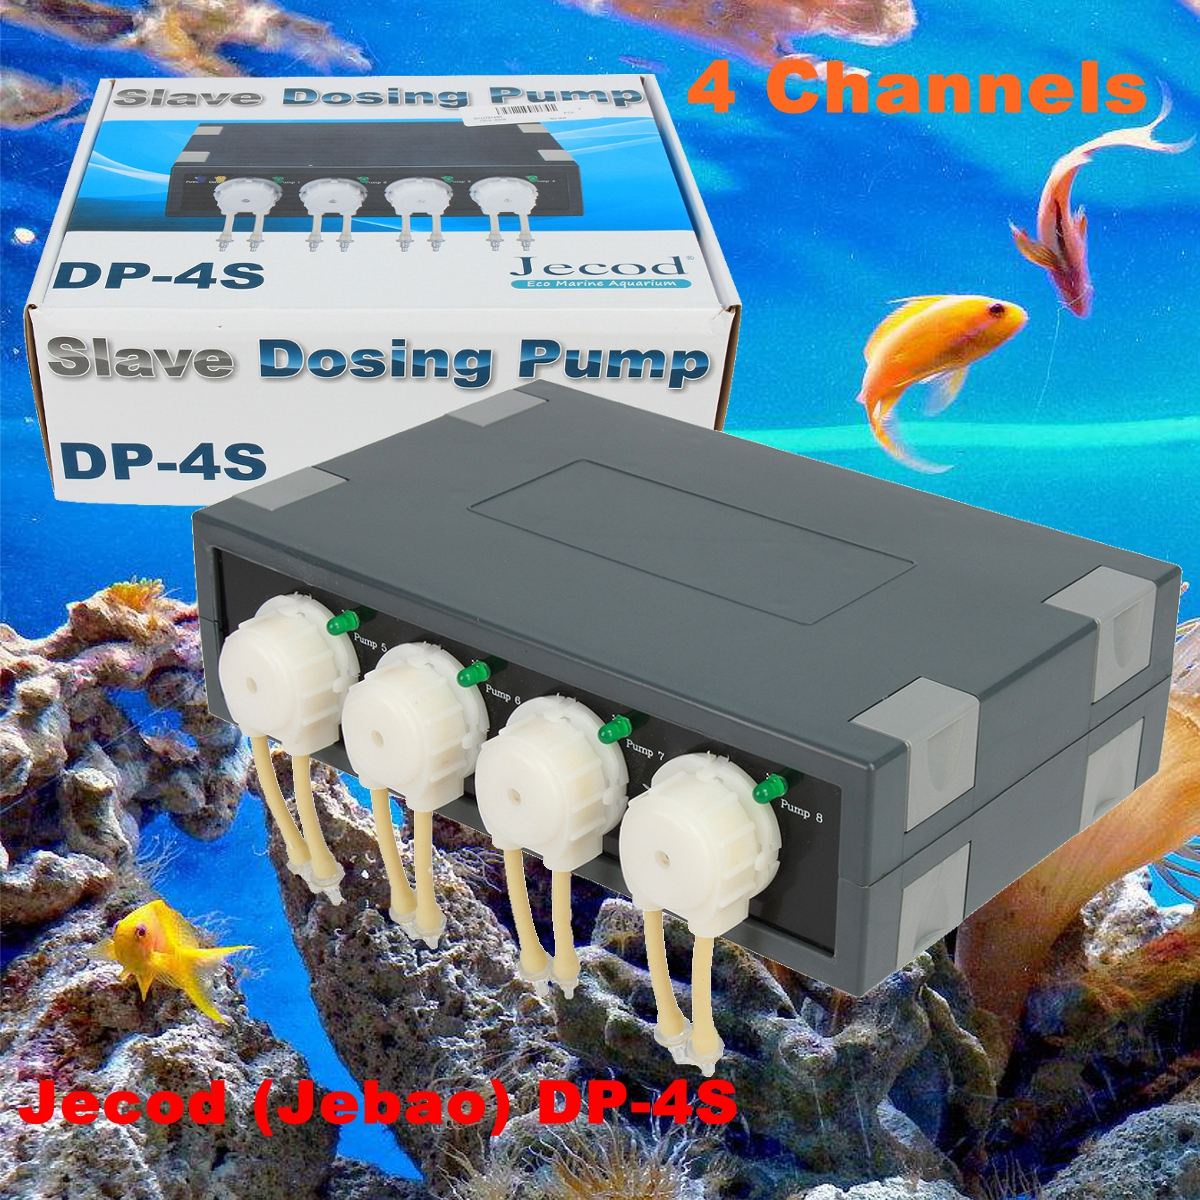 Fish & Aquariums D&d Jecod Dcp-20000 Variable Speed Dc Pump Reputation First